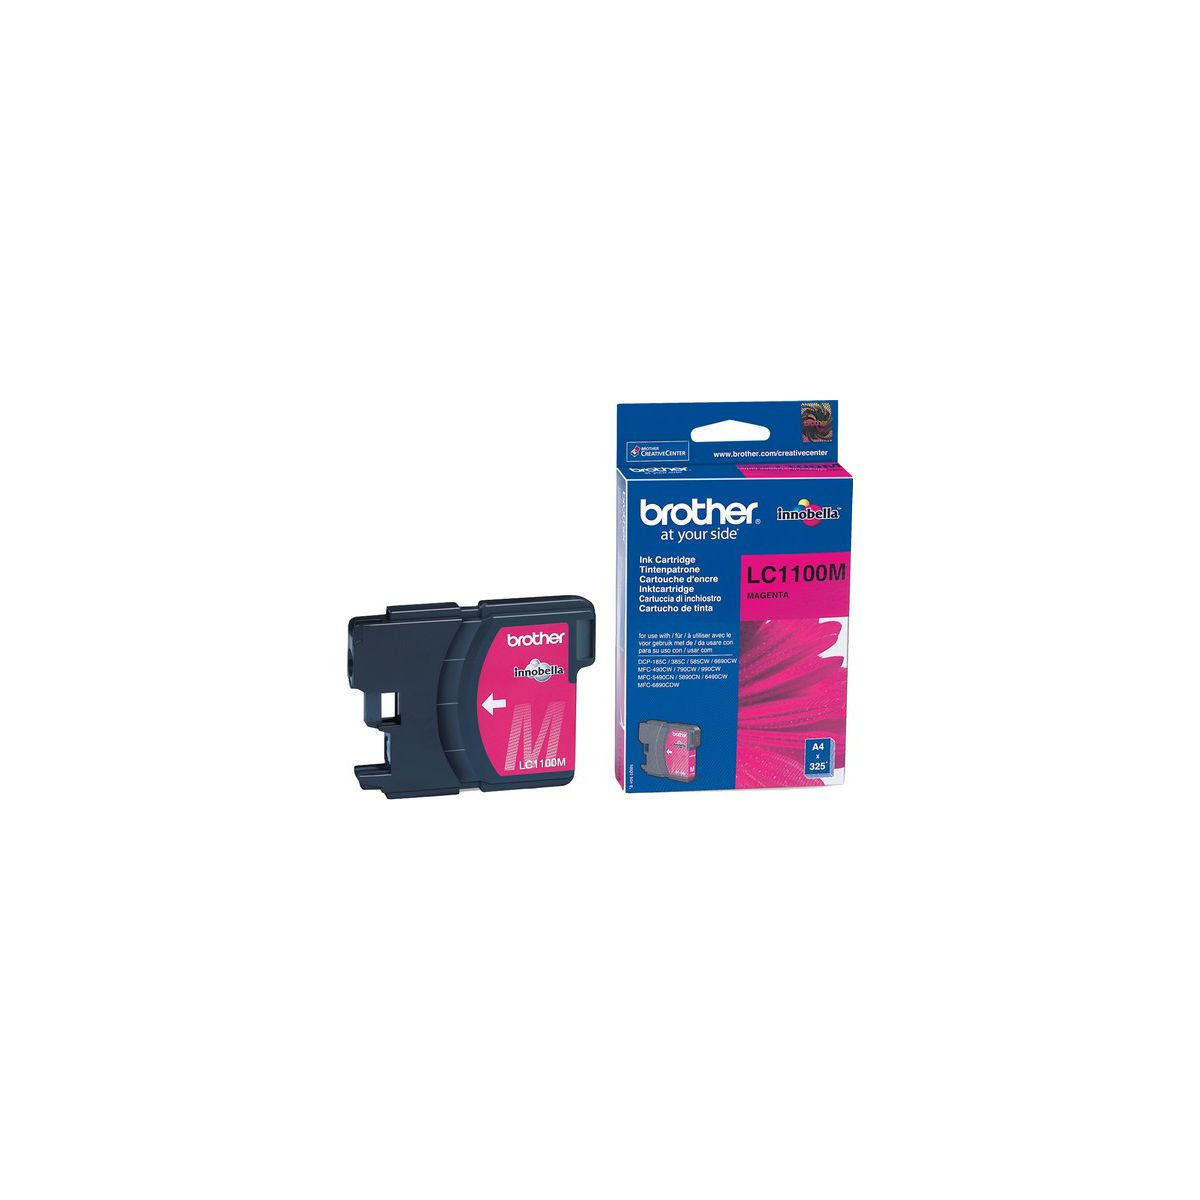 Cartouche brother lc1100 magenta (photo)